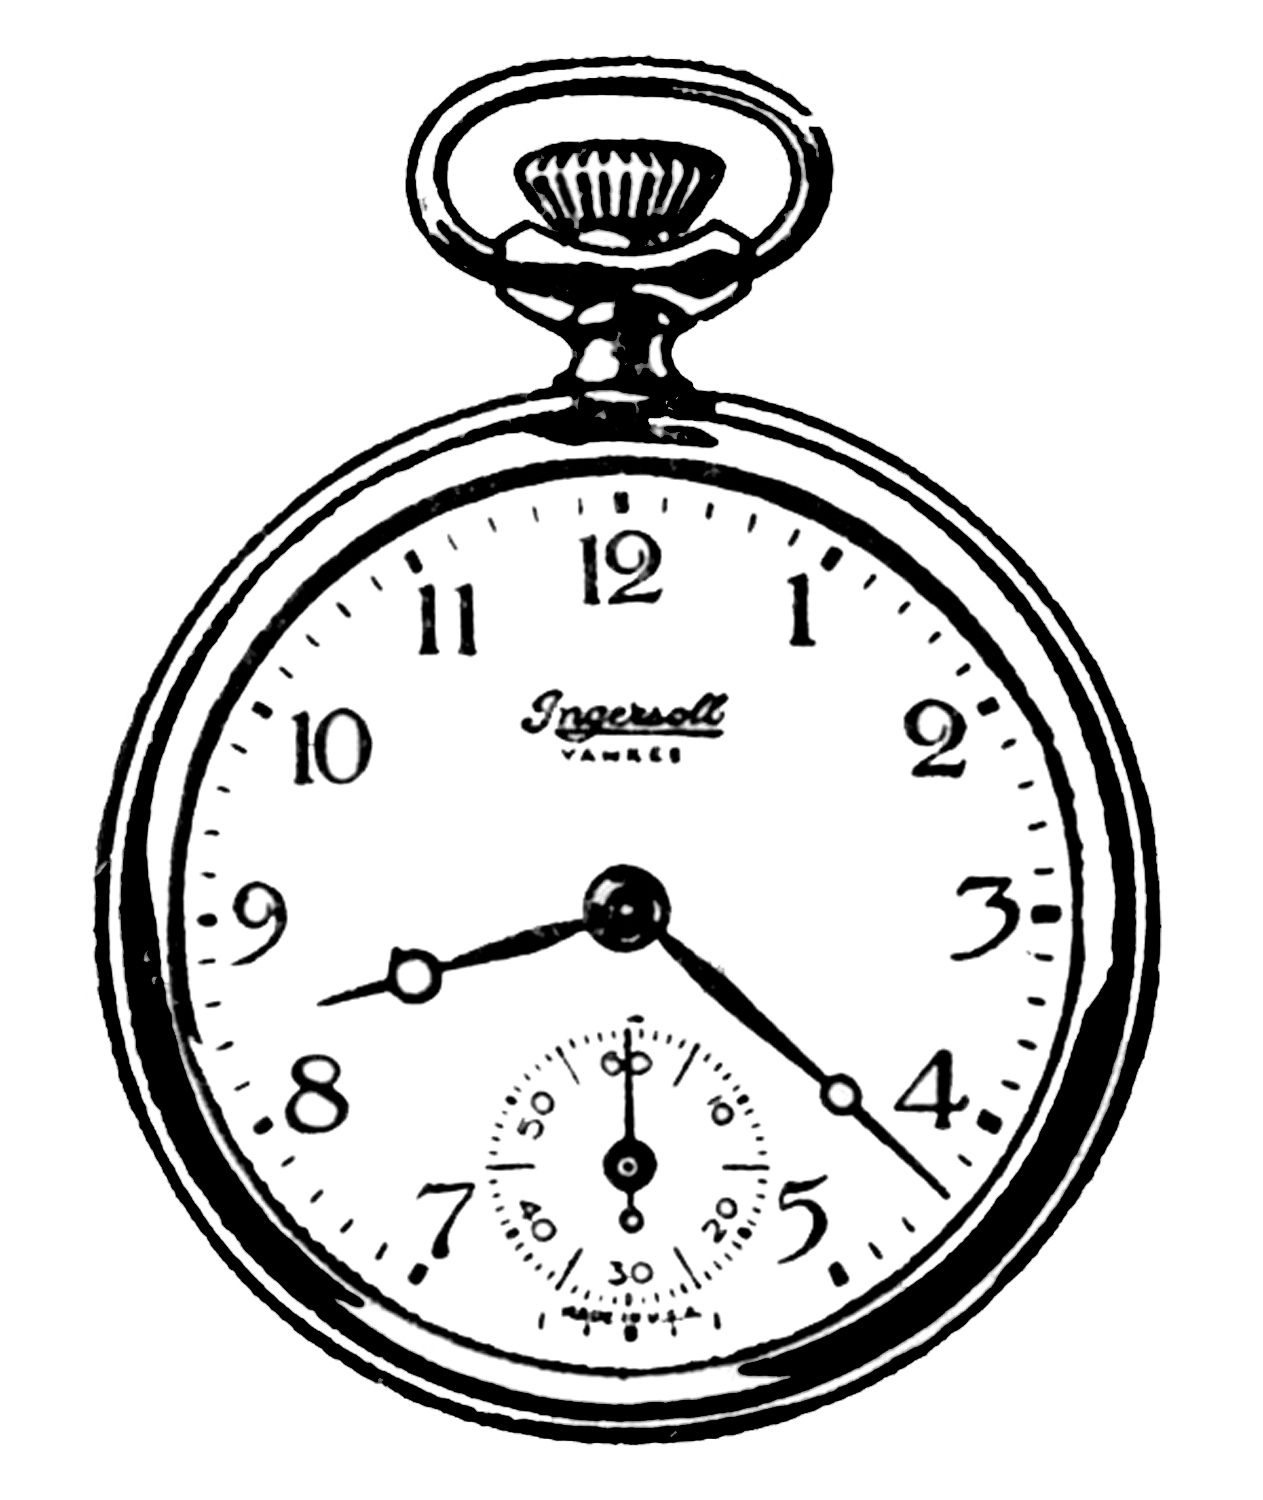 f2cf6d4ec39 Vintage Clip Art - Black and White Pocket Watches - The Graphics Fairy